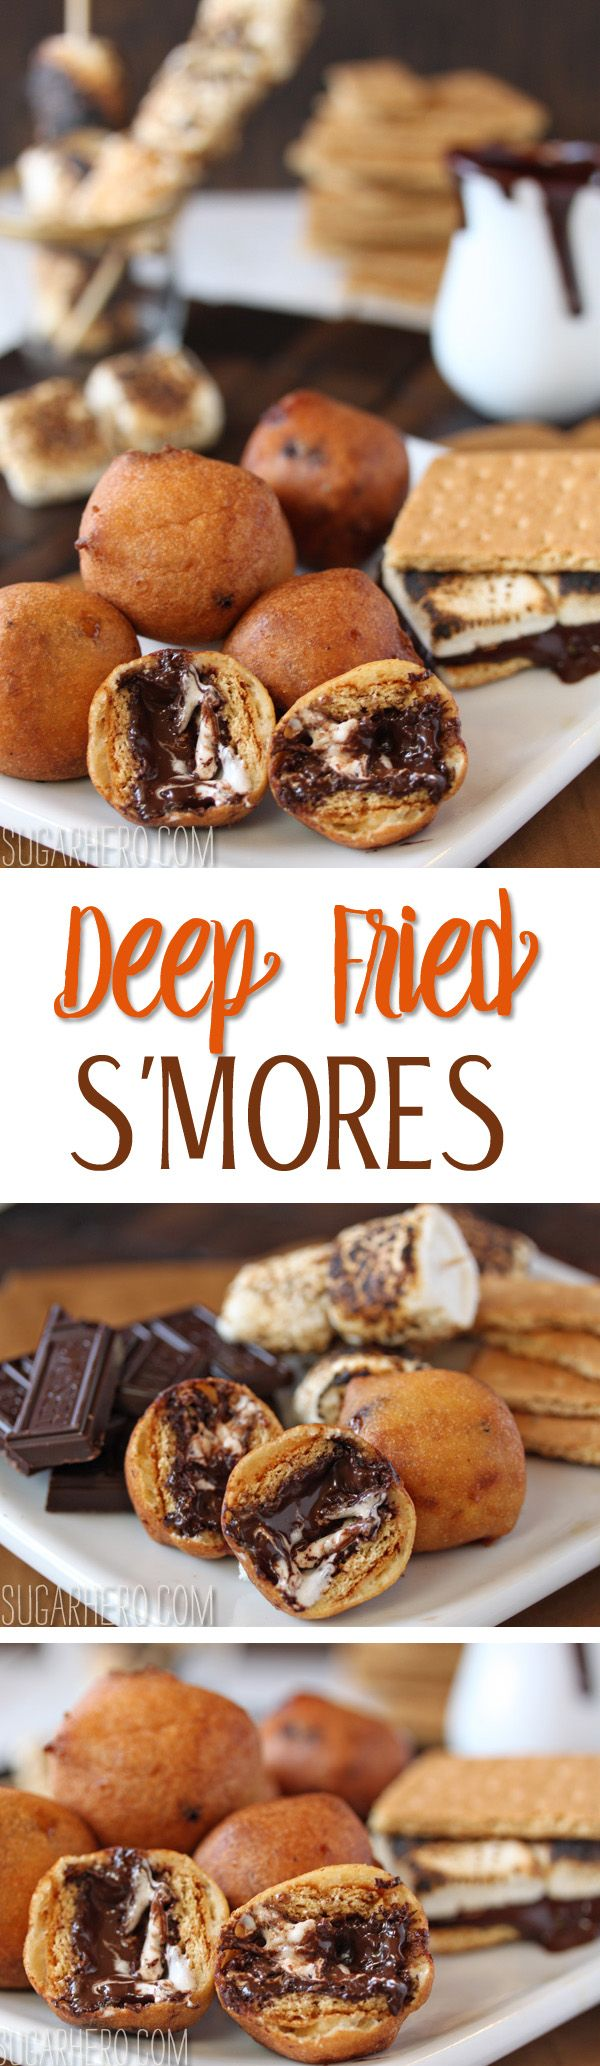 Deep Fried S'mores - the best new way to enjoy s'mores! With melted chocolate and marshmallows in every bite.   From SugarHero.com